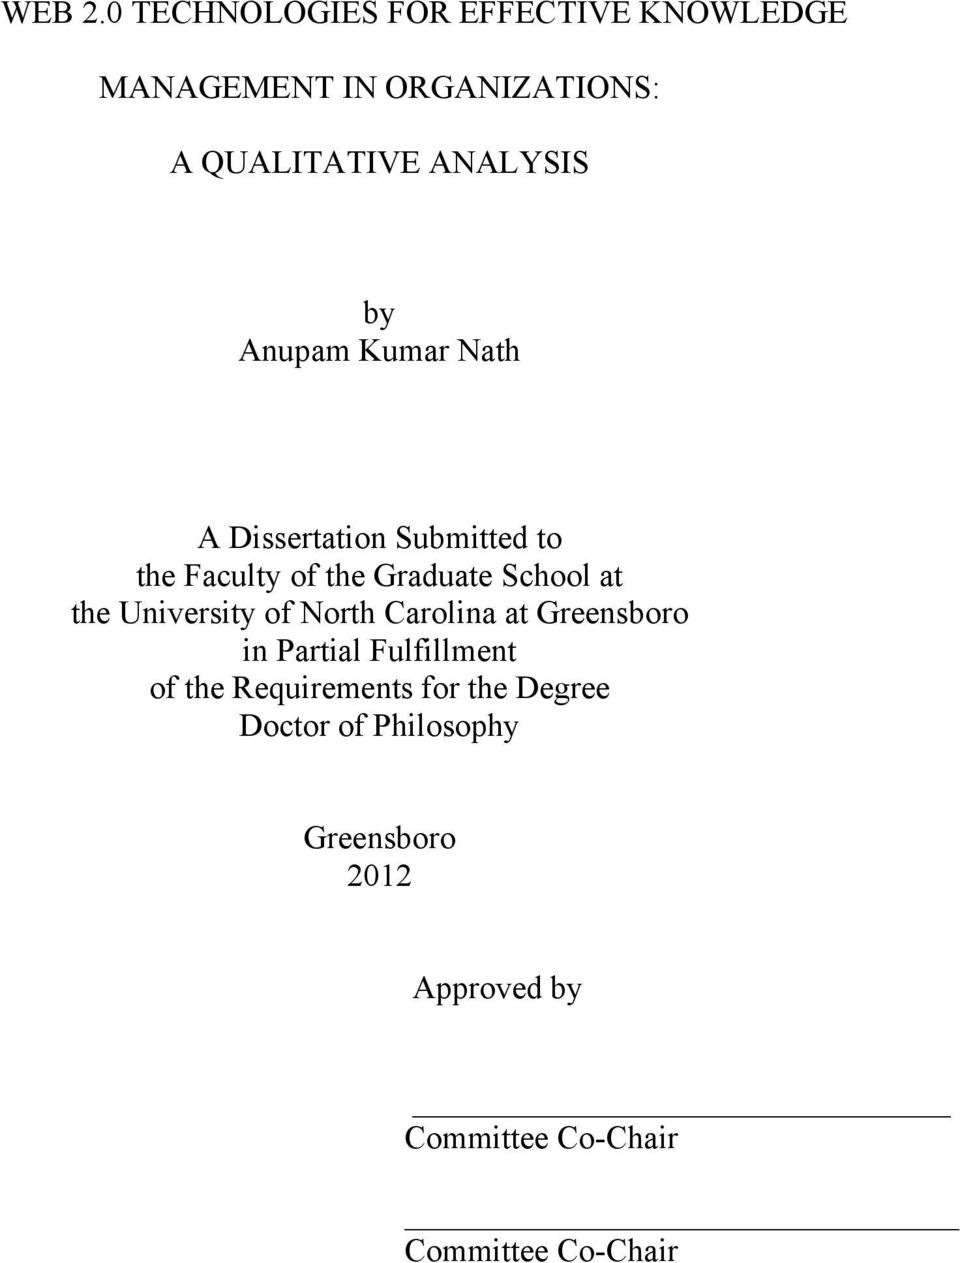 Anupam Kumar Nath A Dissertation Submitted to the Faculty of the Graduate School at the